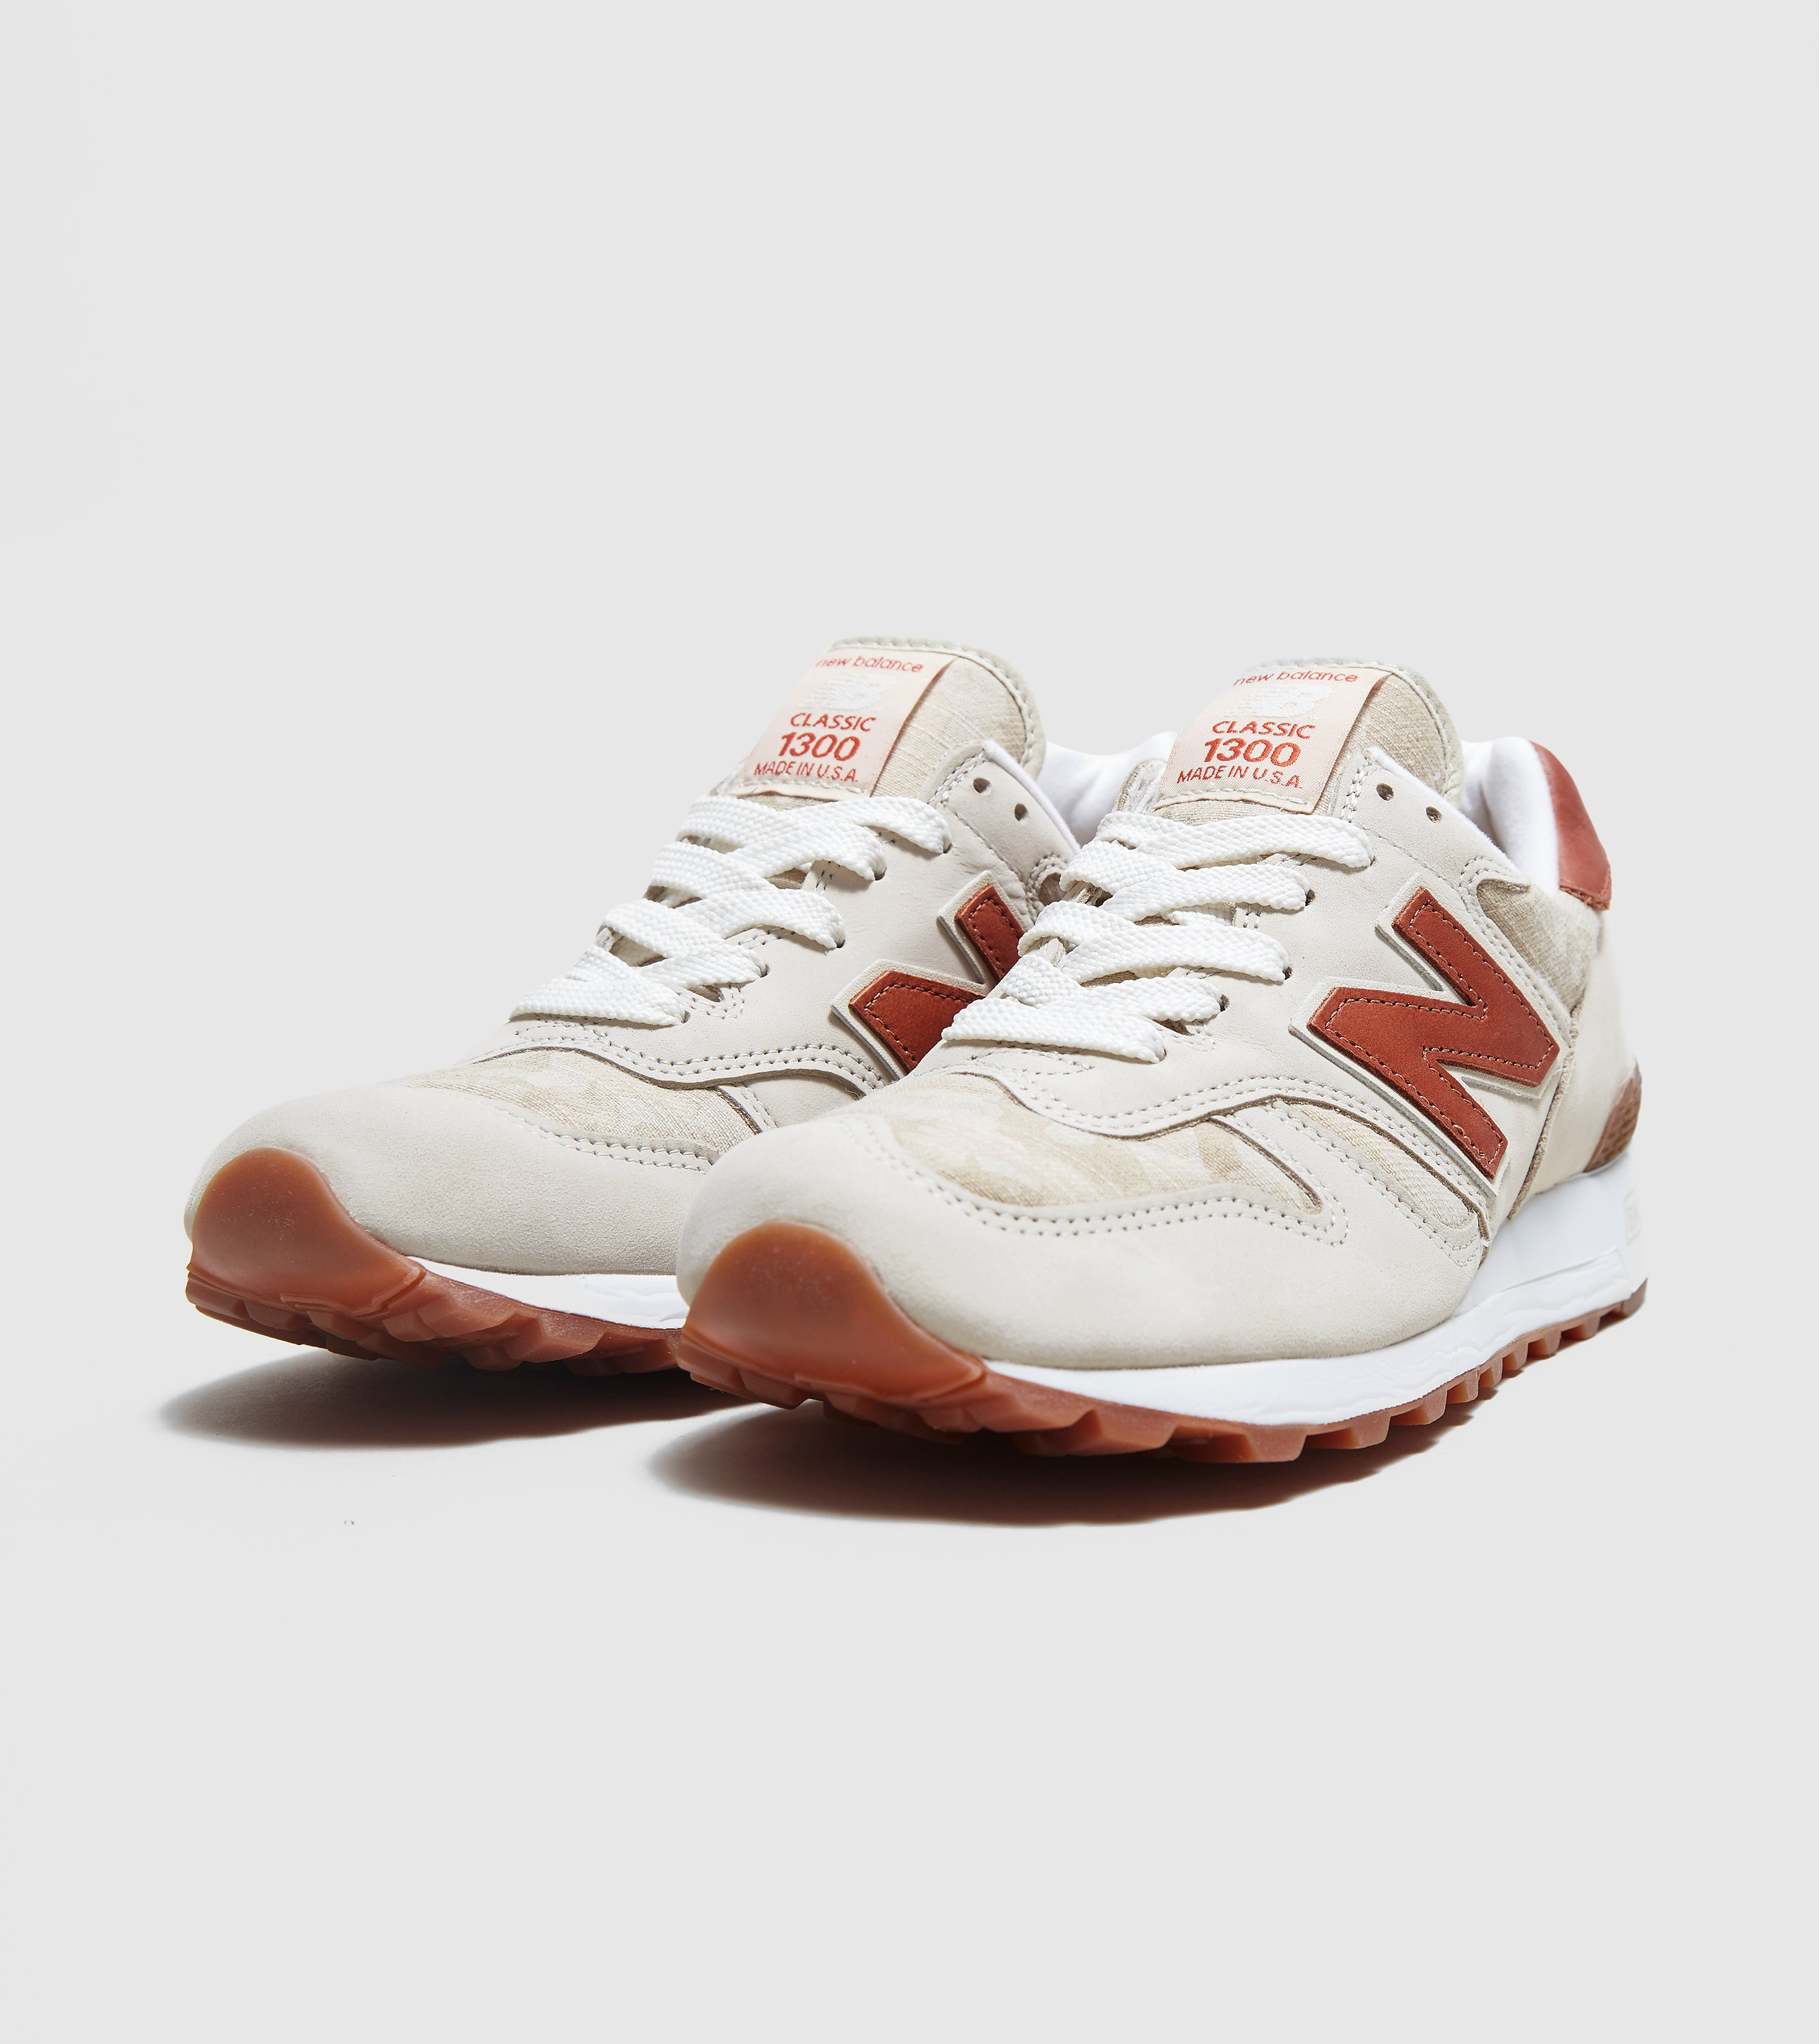 New Balance 1300 'Made in US'